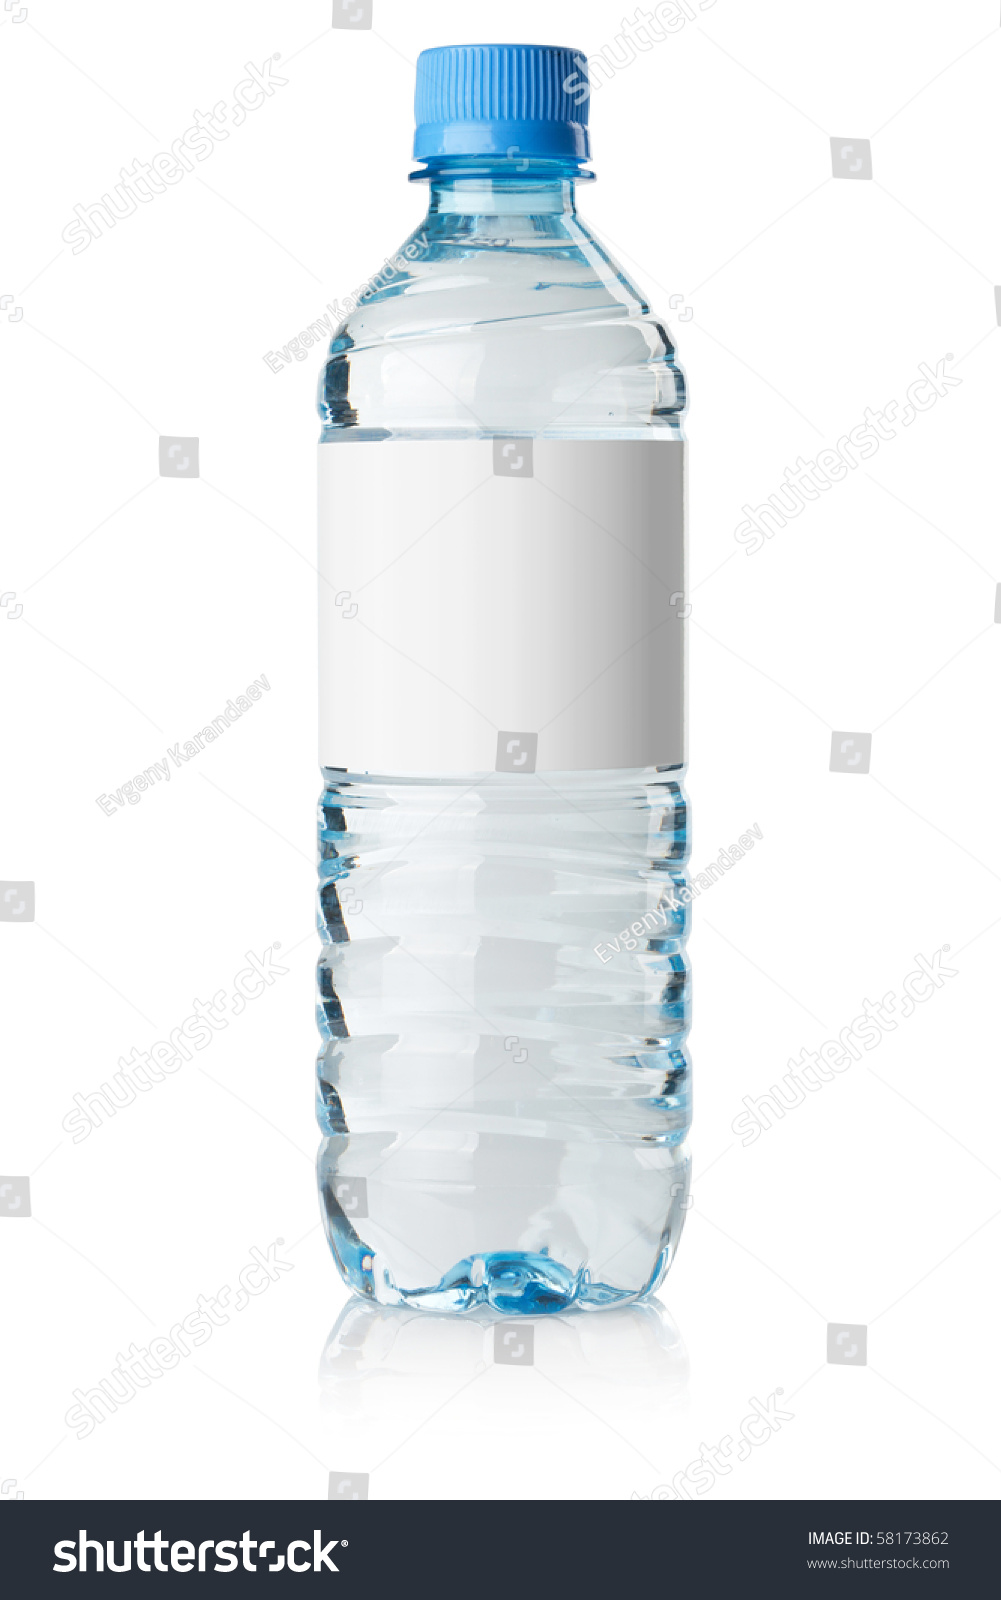 Soda Water Bottle Blank Label Isolated Stock Photo 58173862 ...